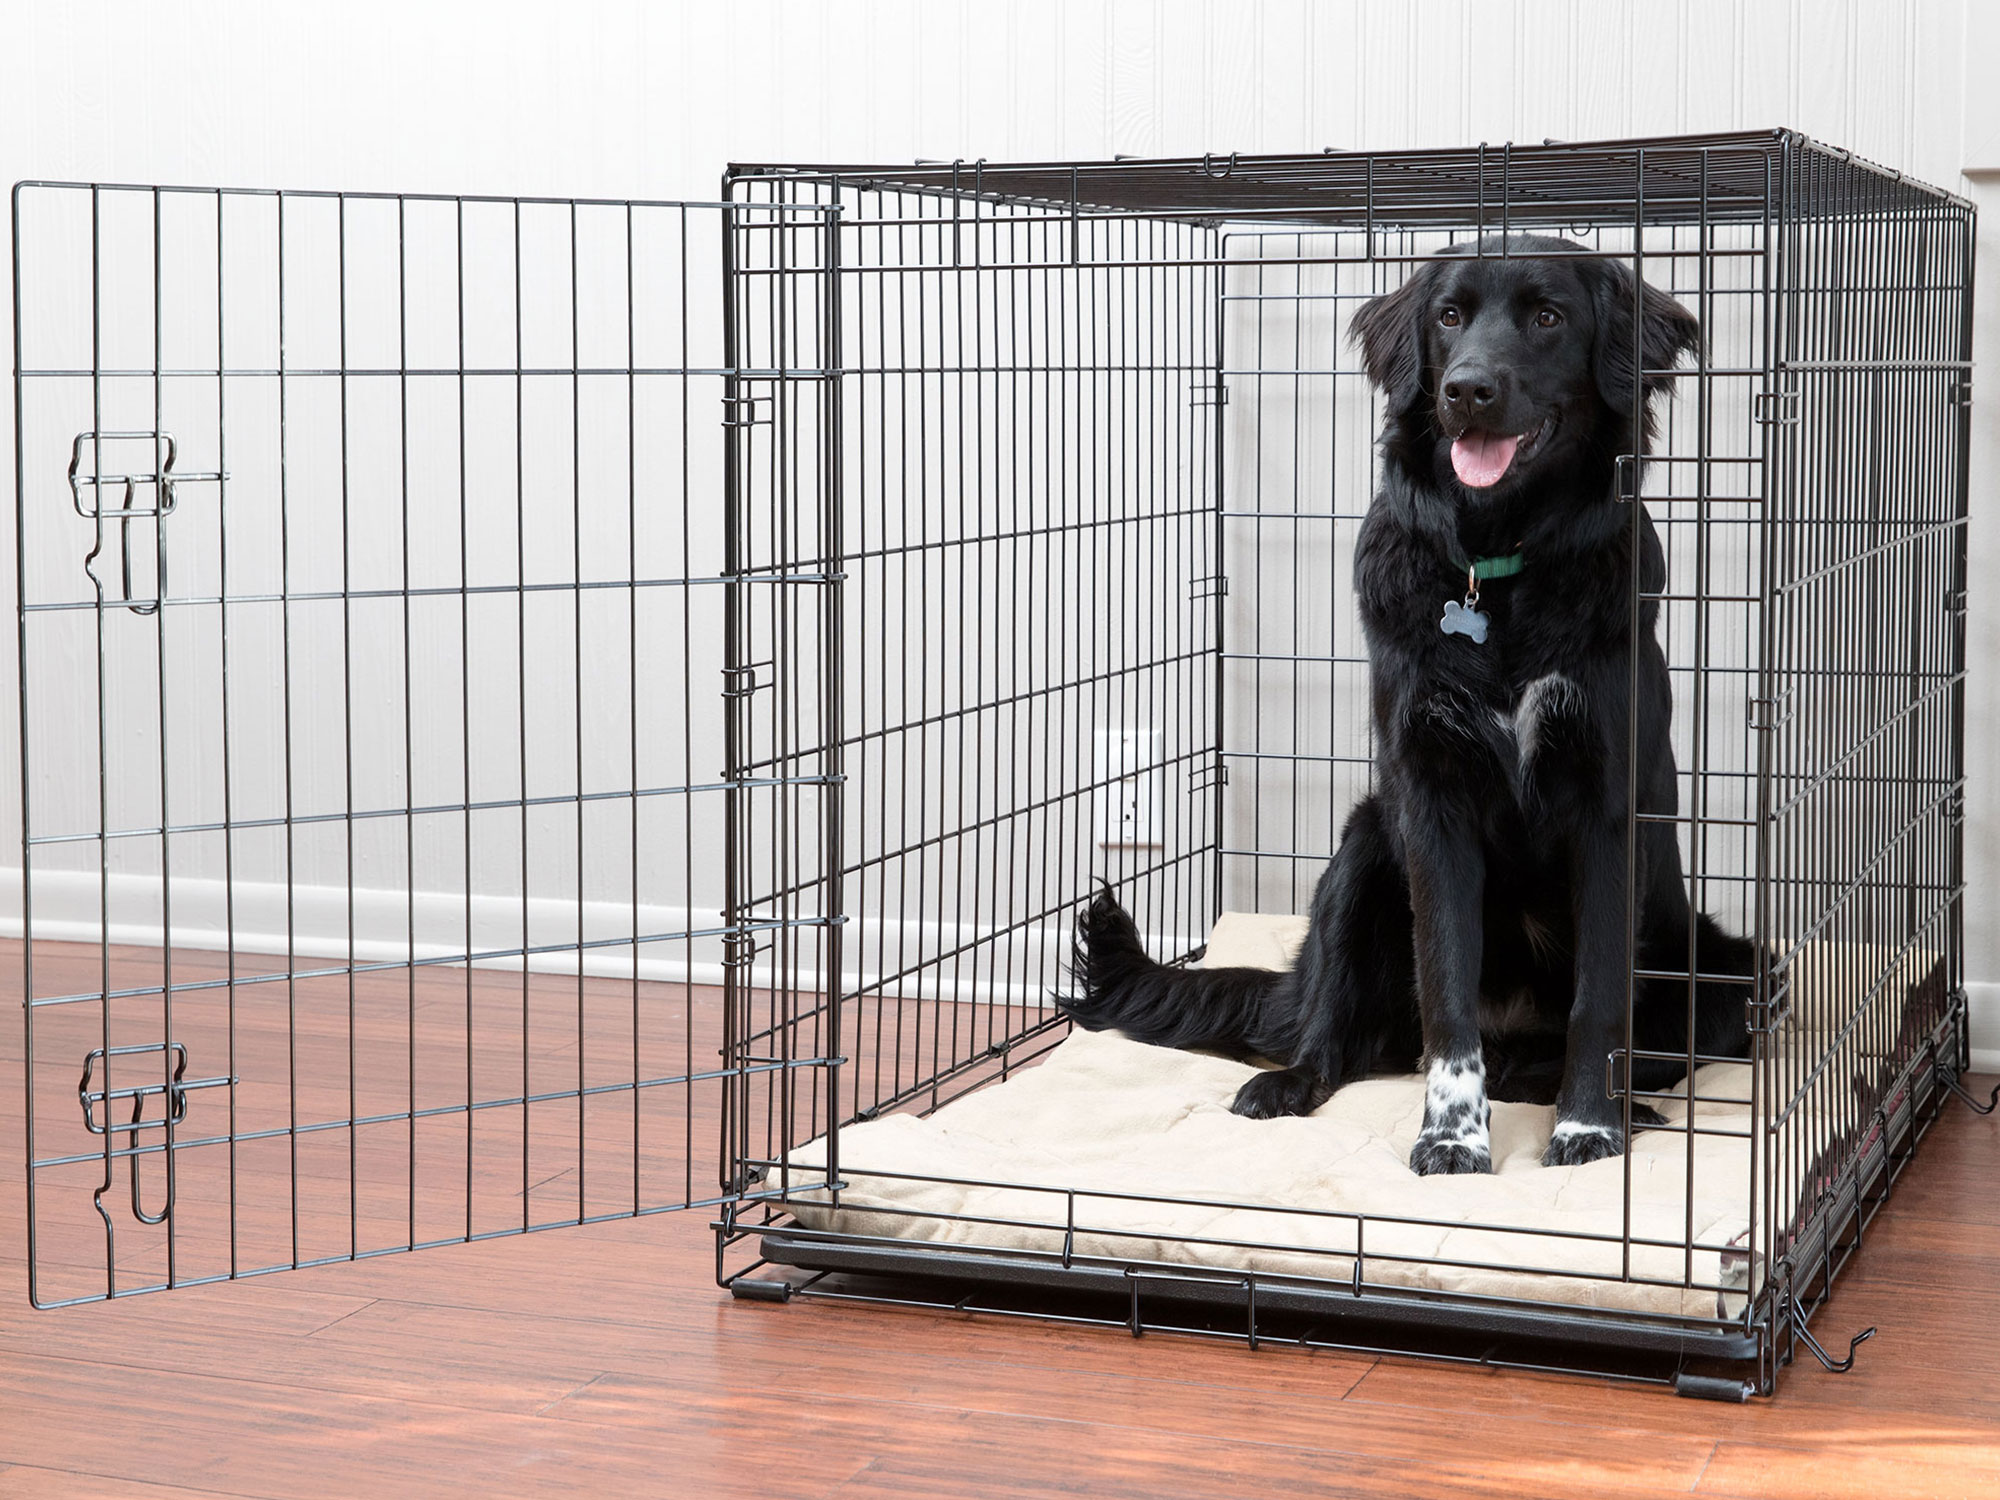 crate_training_dog